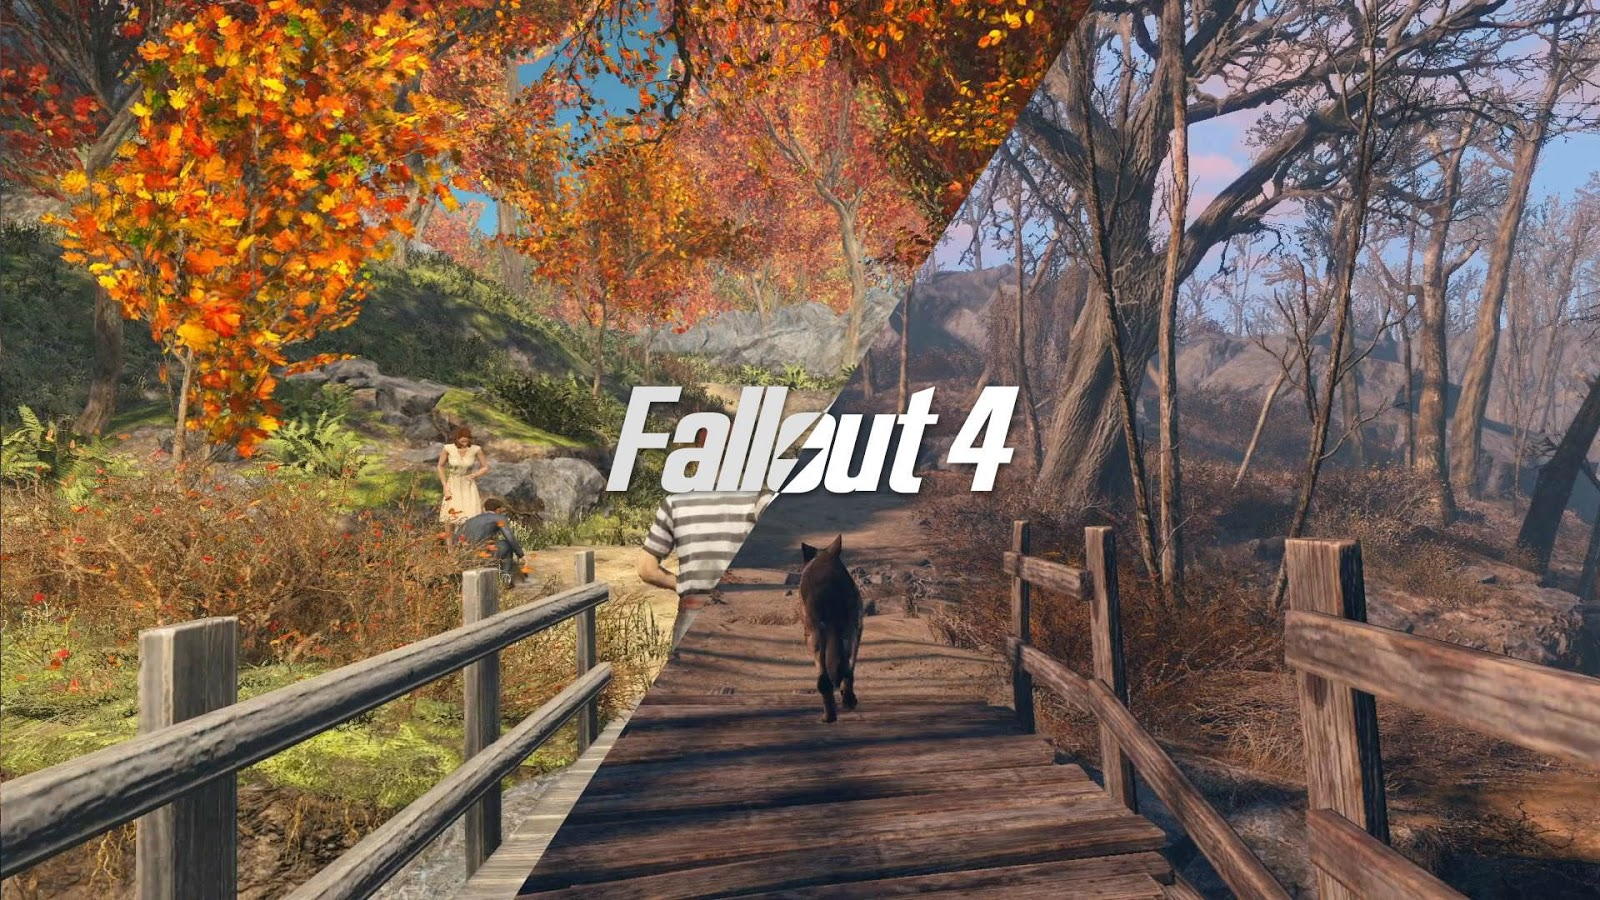 Fallout 4 High quality wallpaper HD